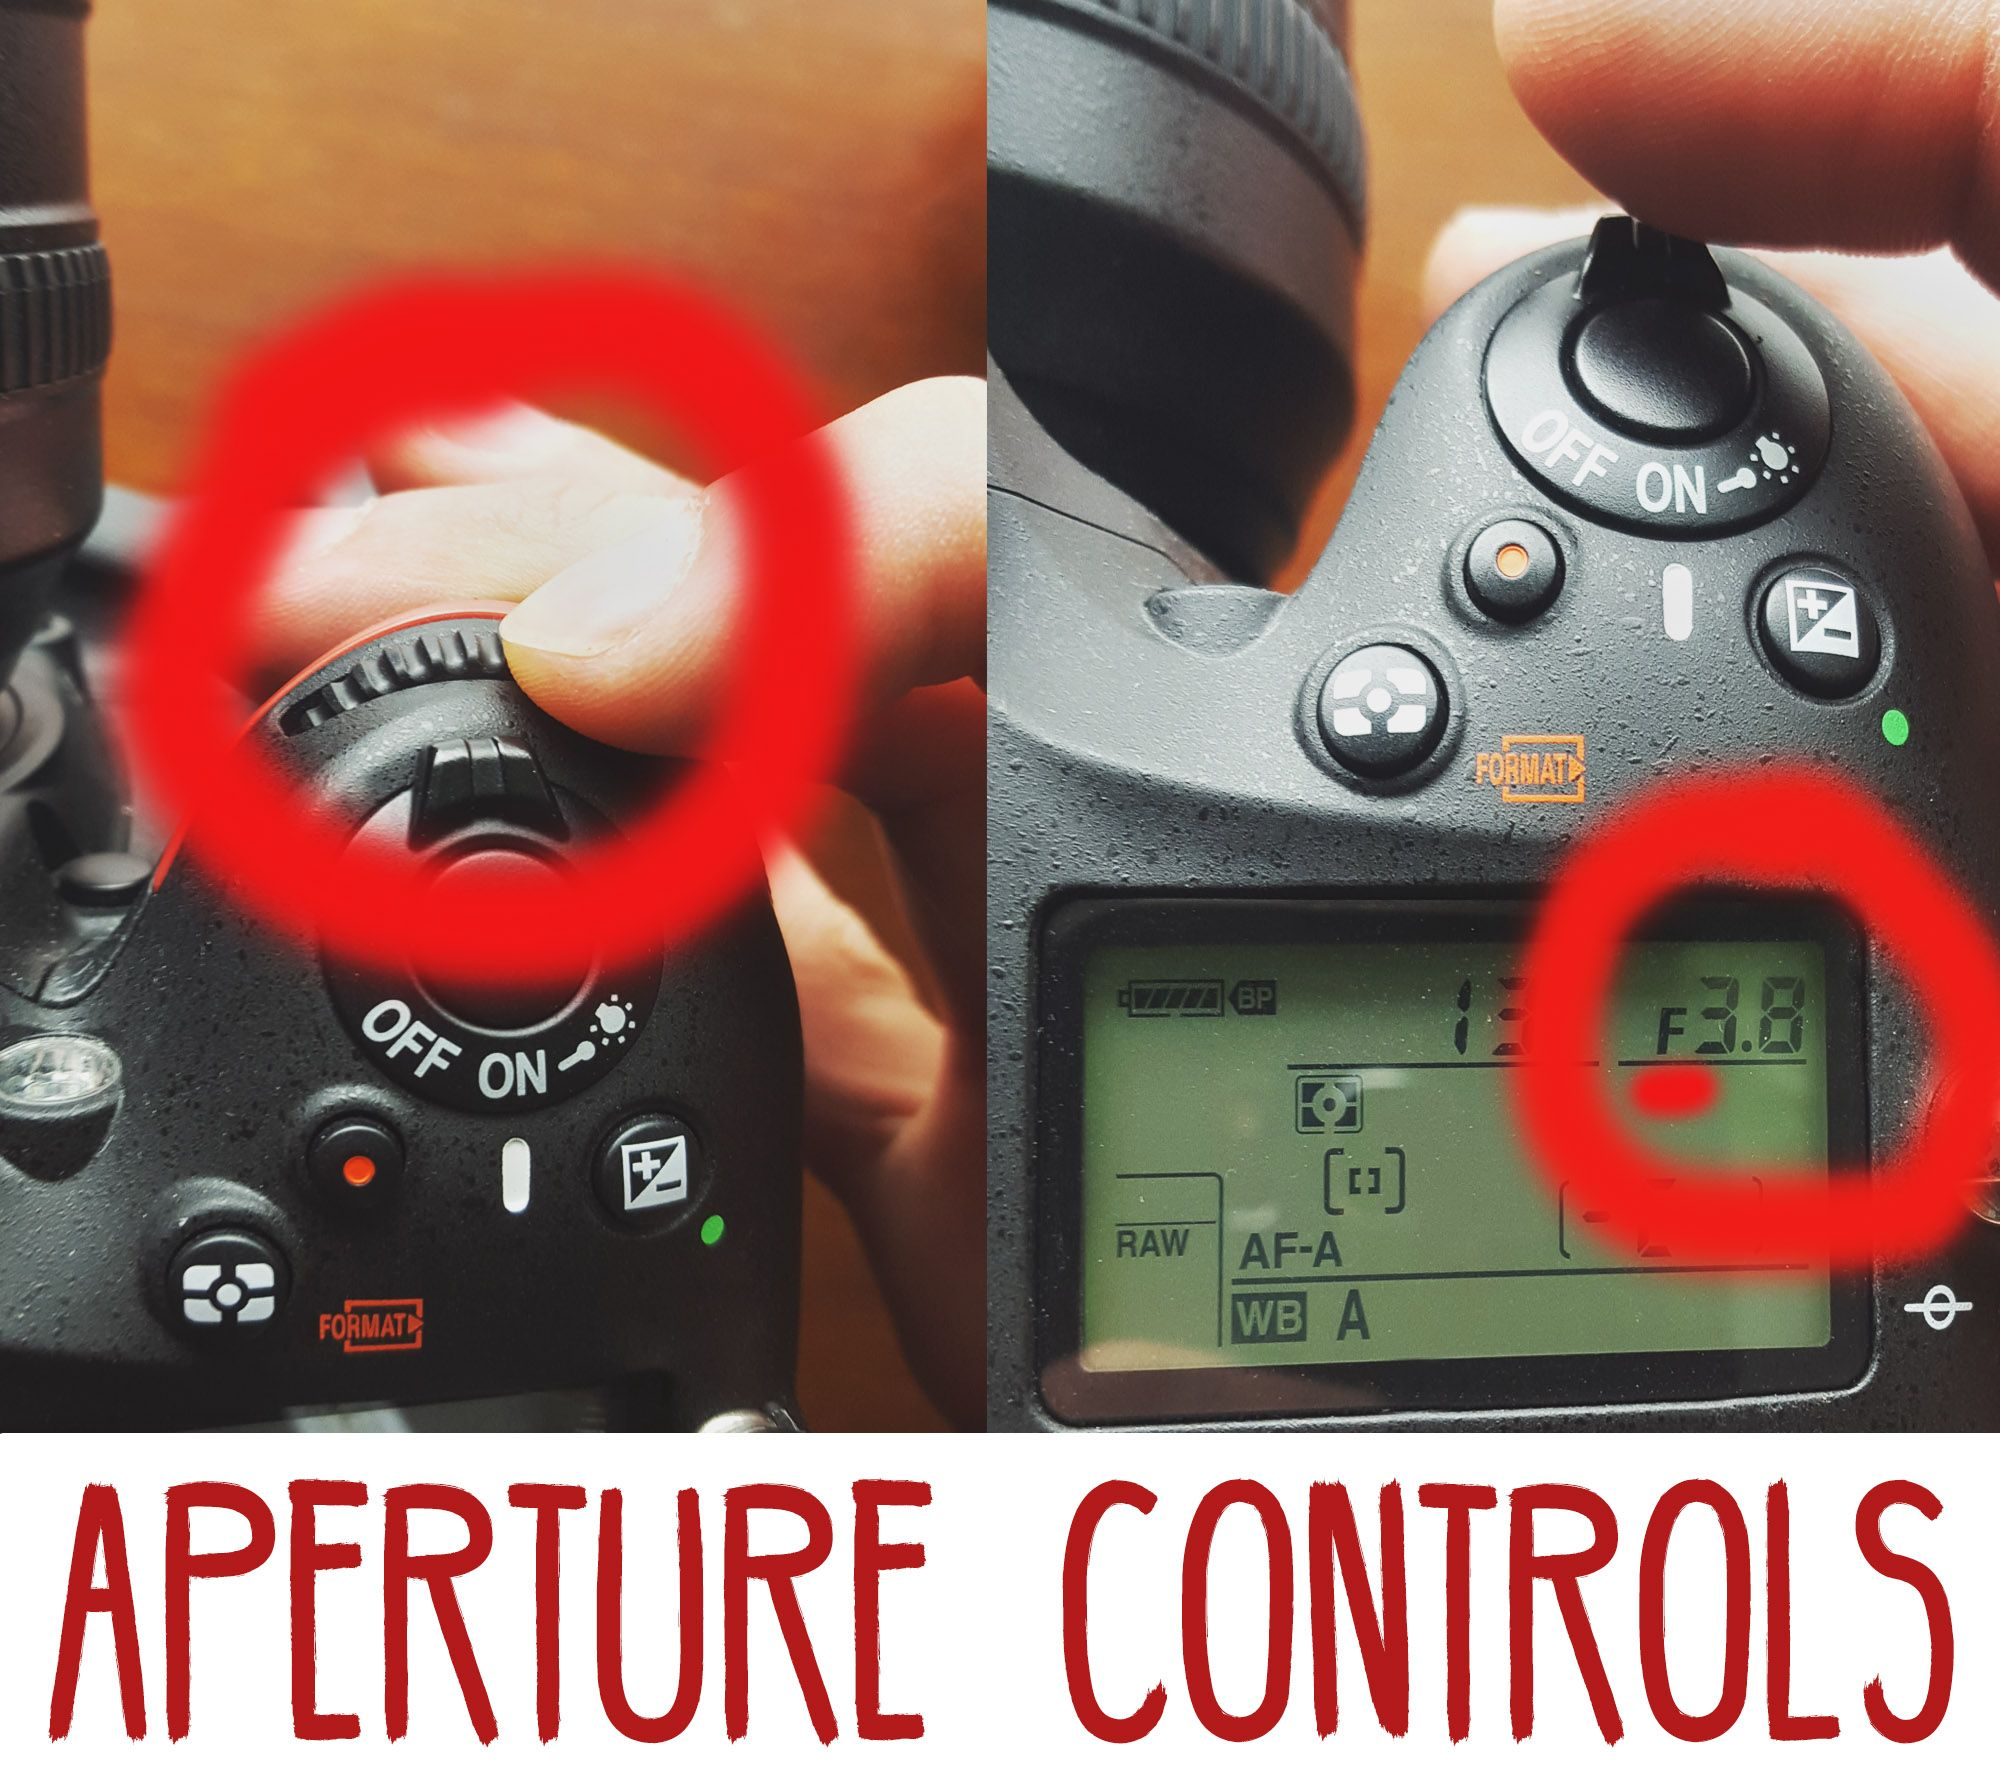 DSLR manual mode - How to control Aperture made simple!